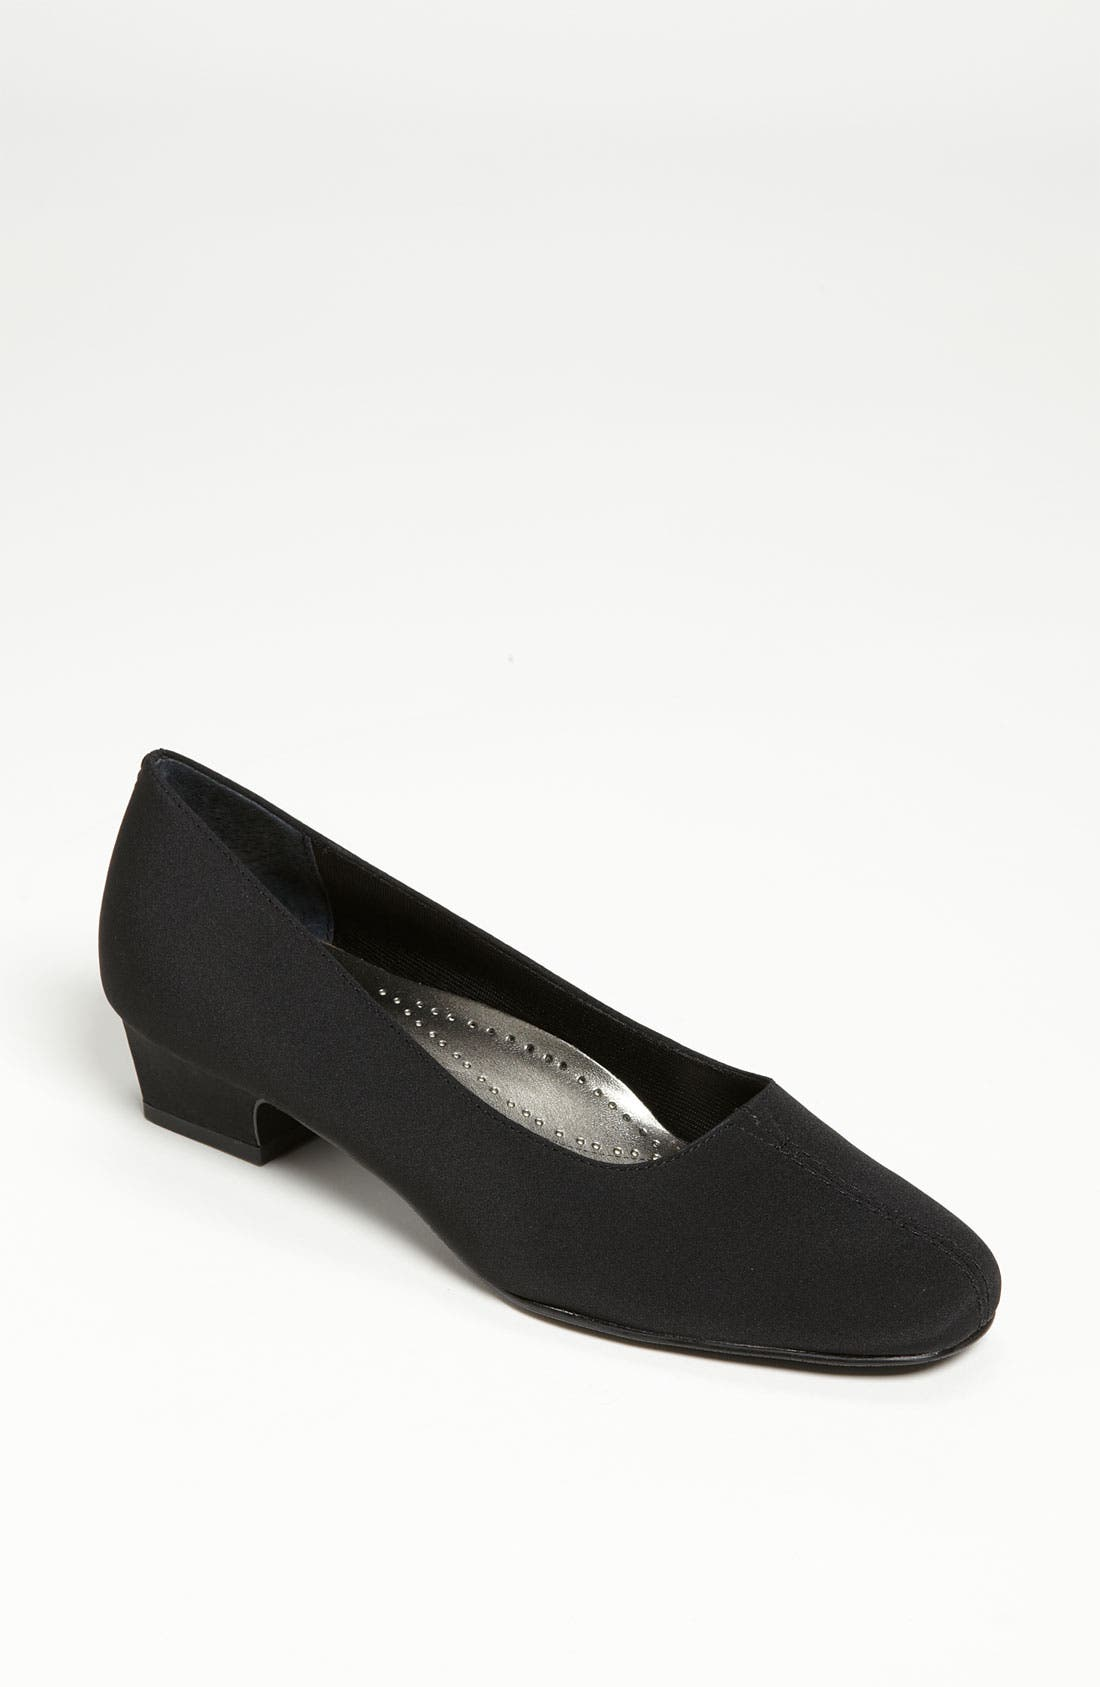 Main Image - Trotters 'Doris' Pump